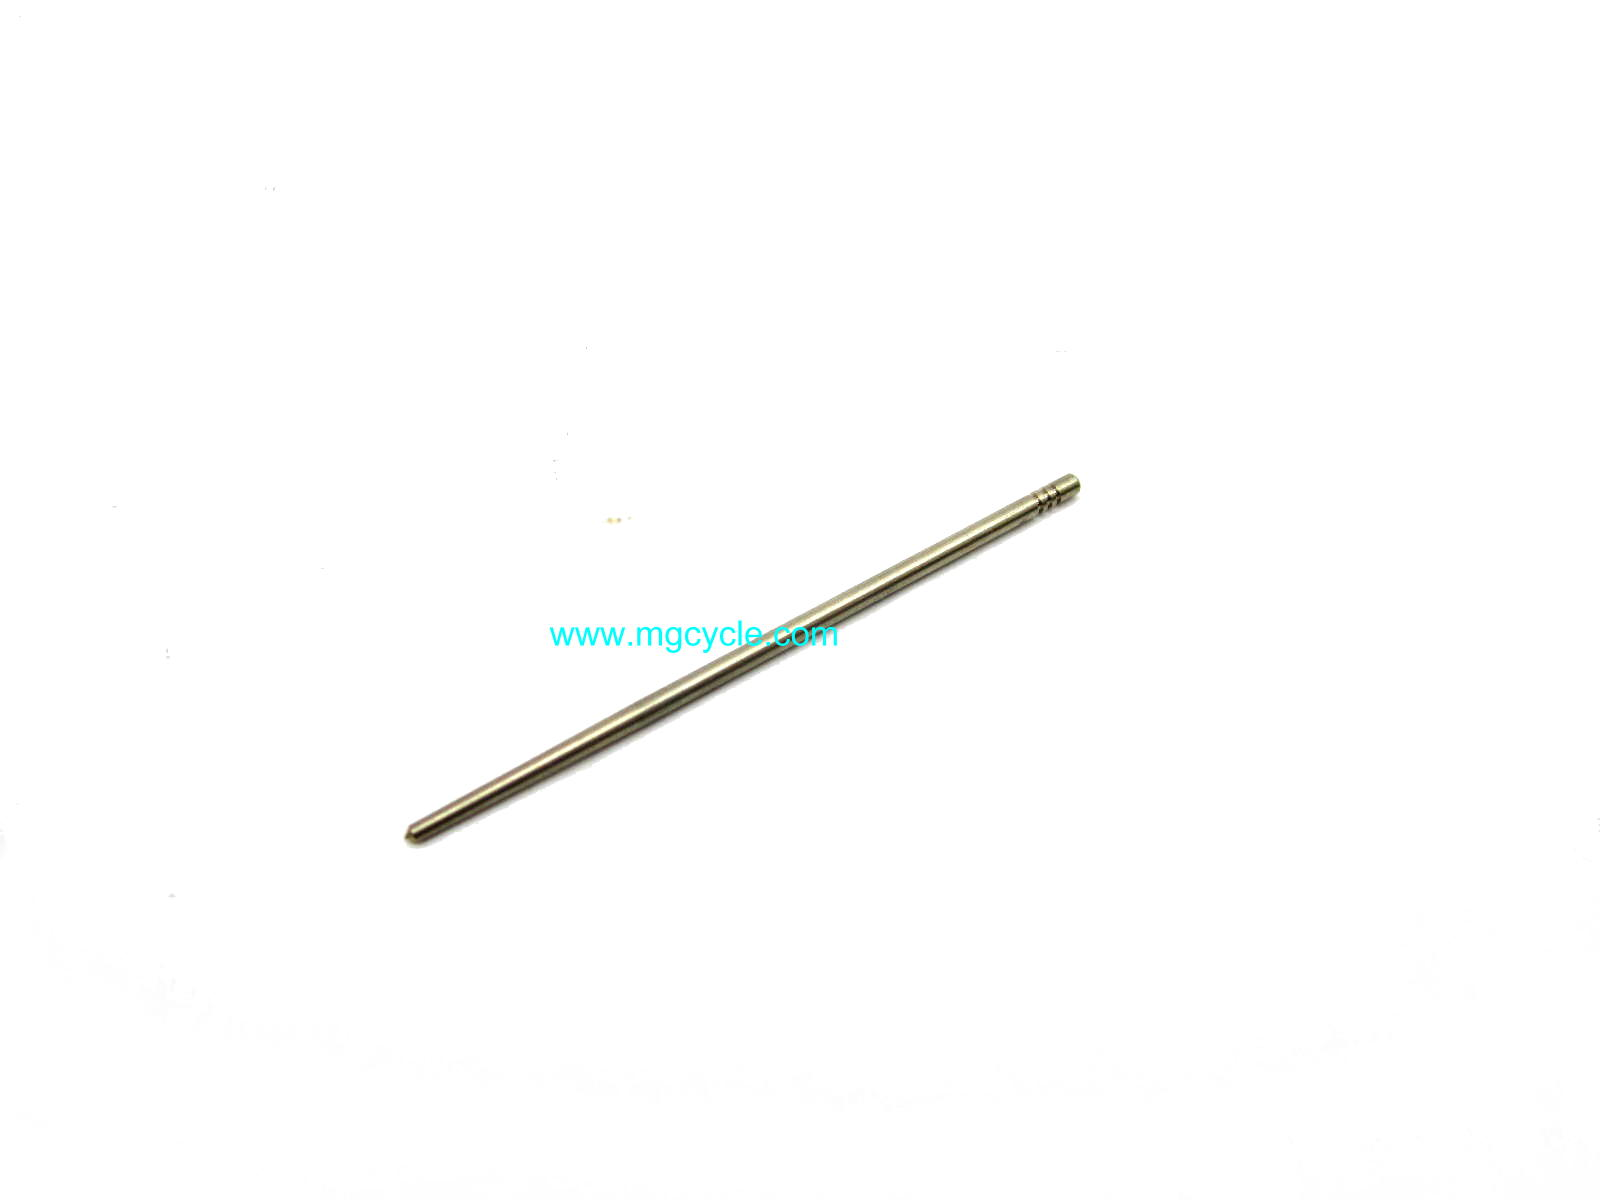 V9 taper slide needle for Dellorto VHB carburetors